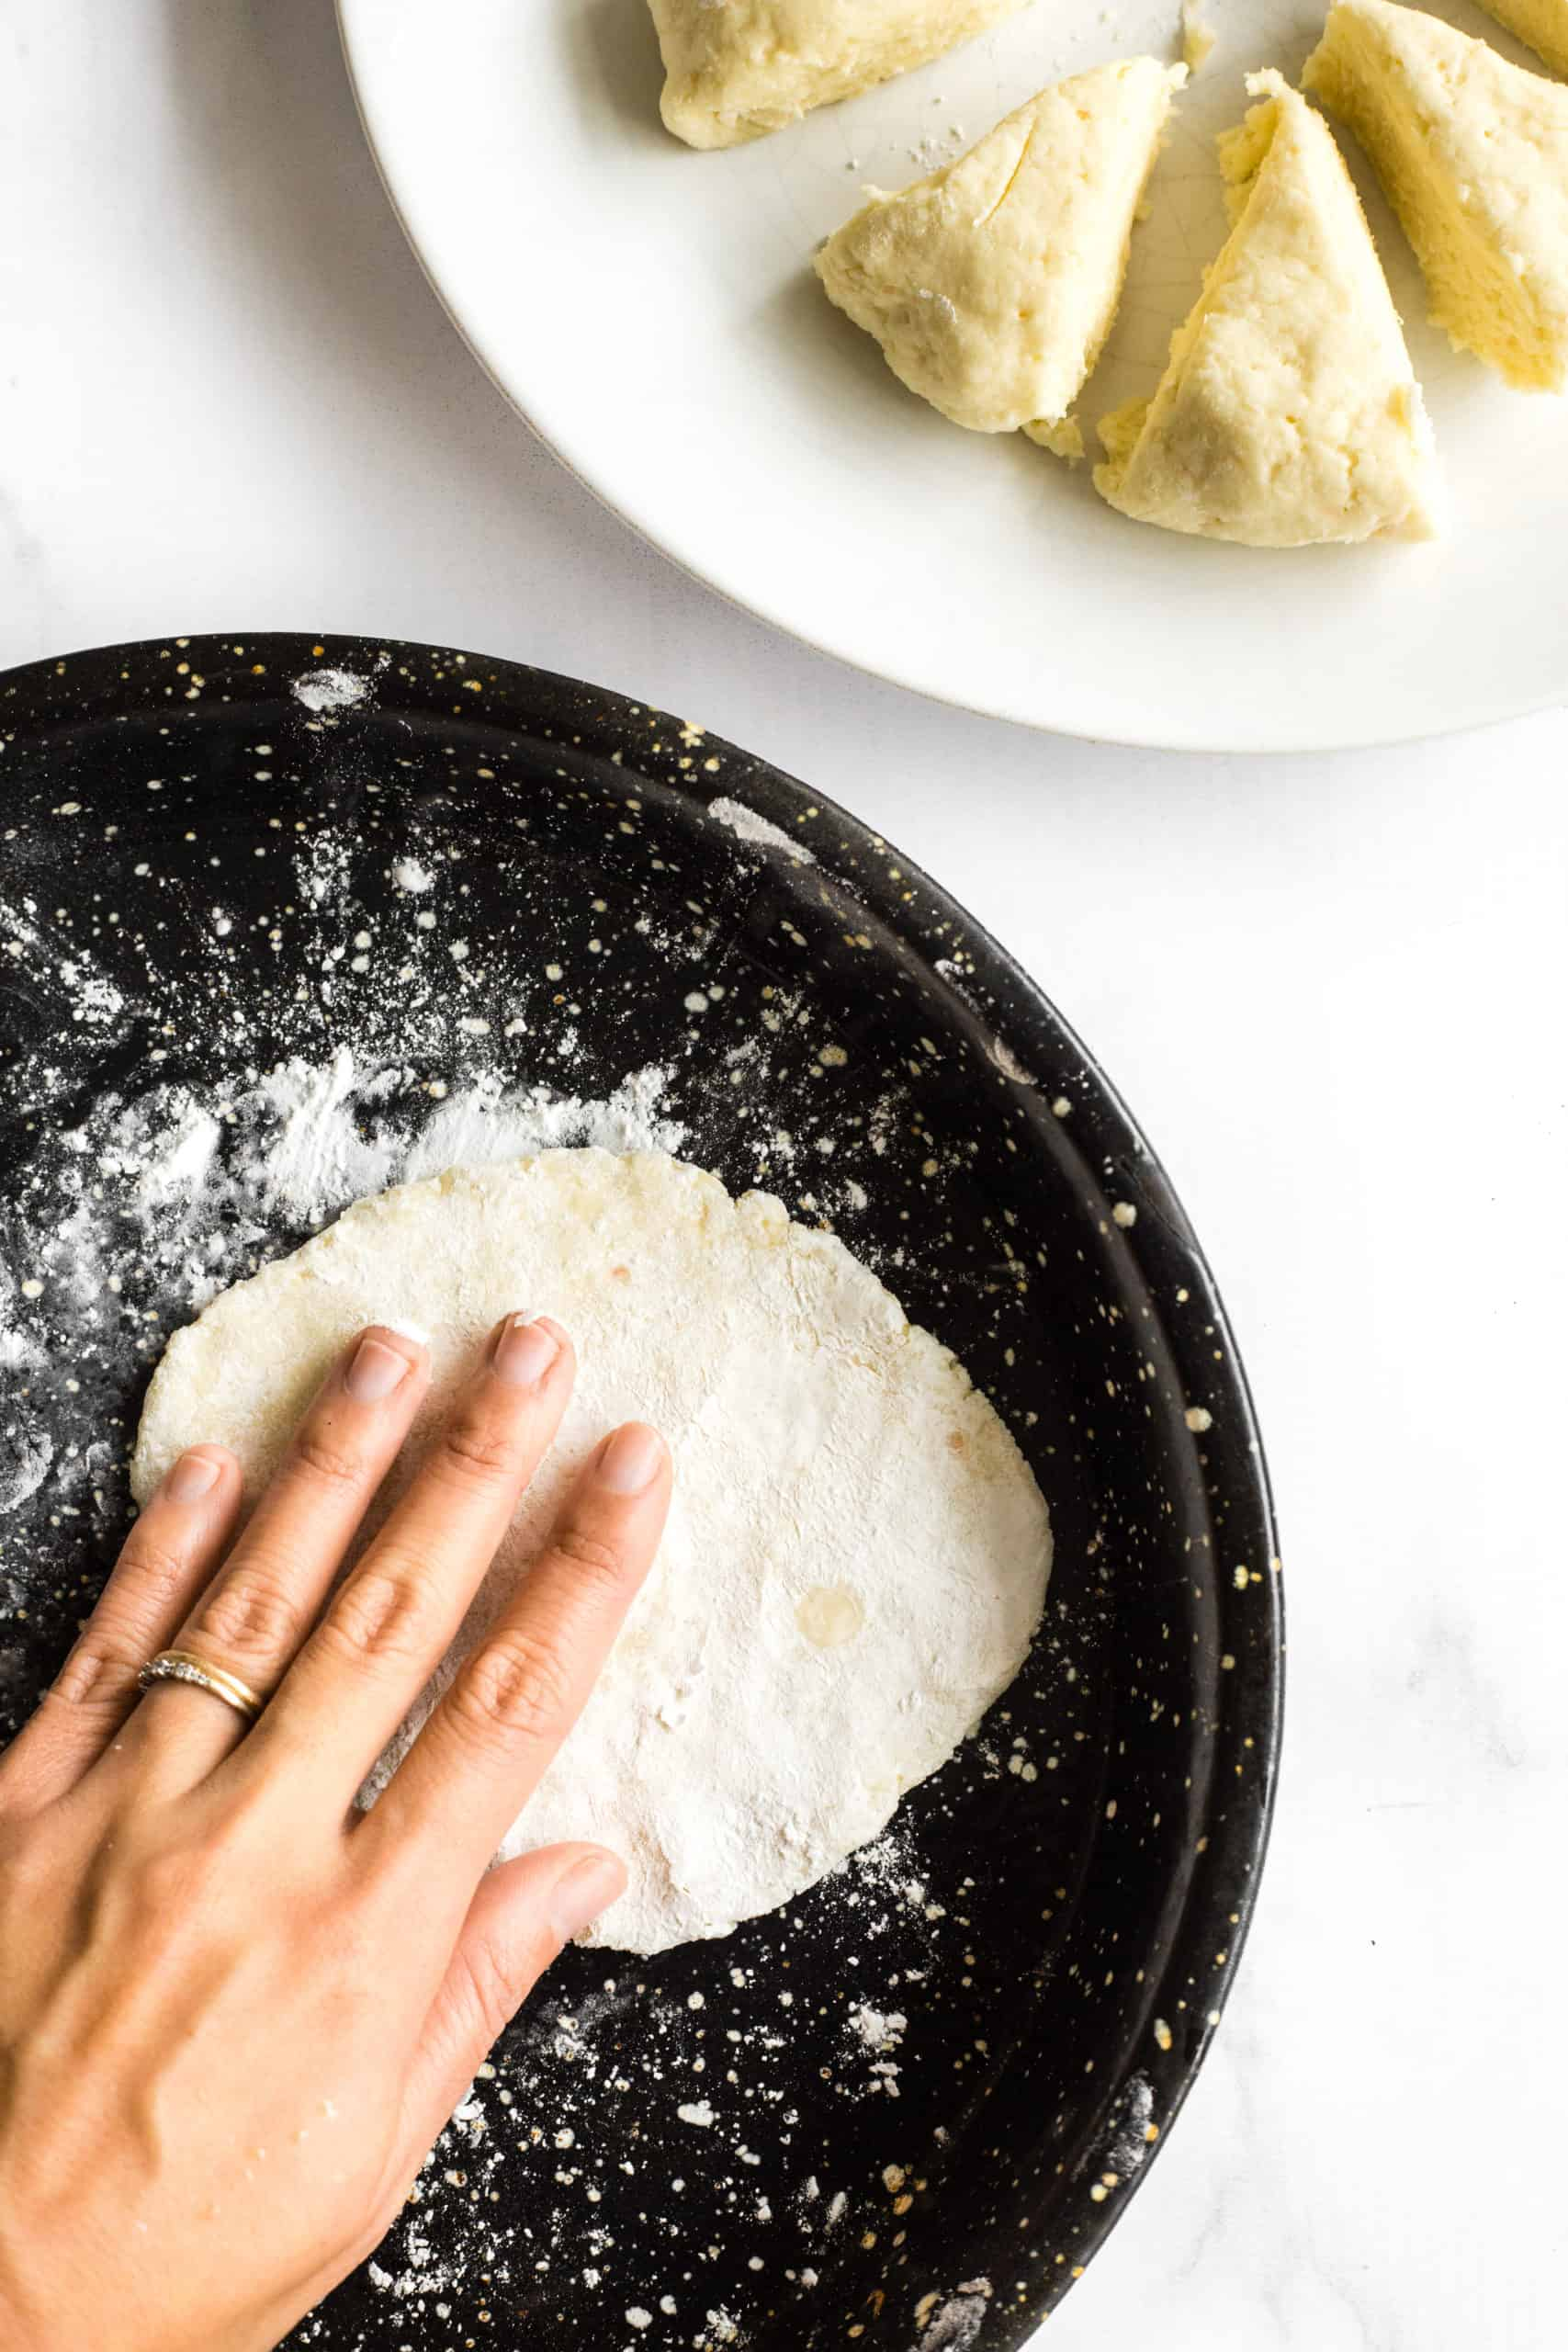 Flattening the gluten-free naan dough with fingers.